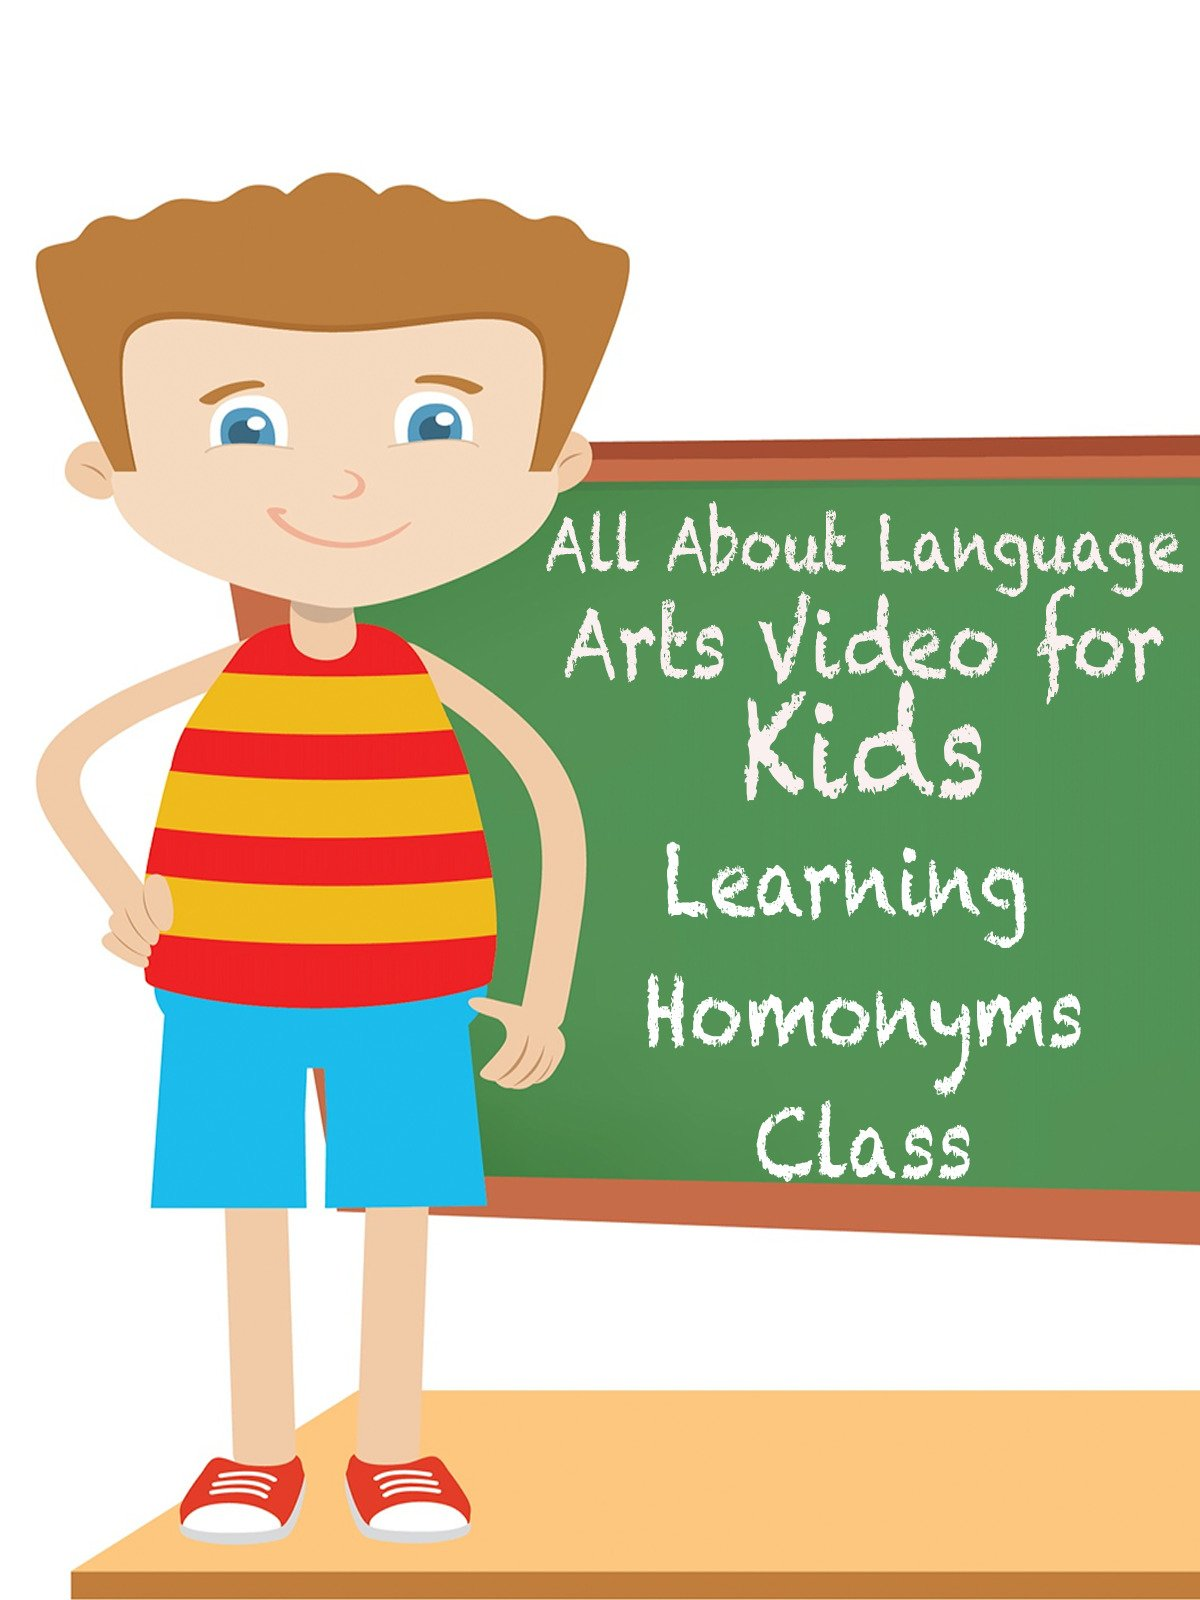 All About Language Arts Video for Kids Learning Homonyms Class